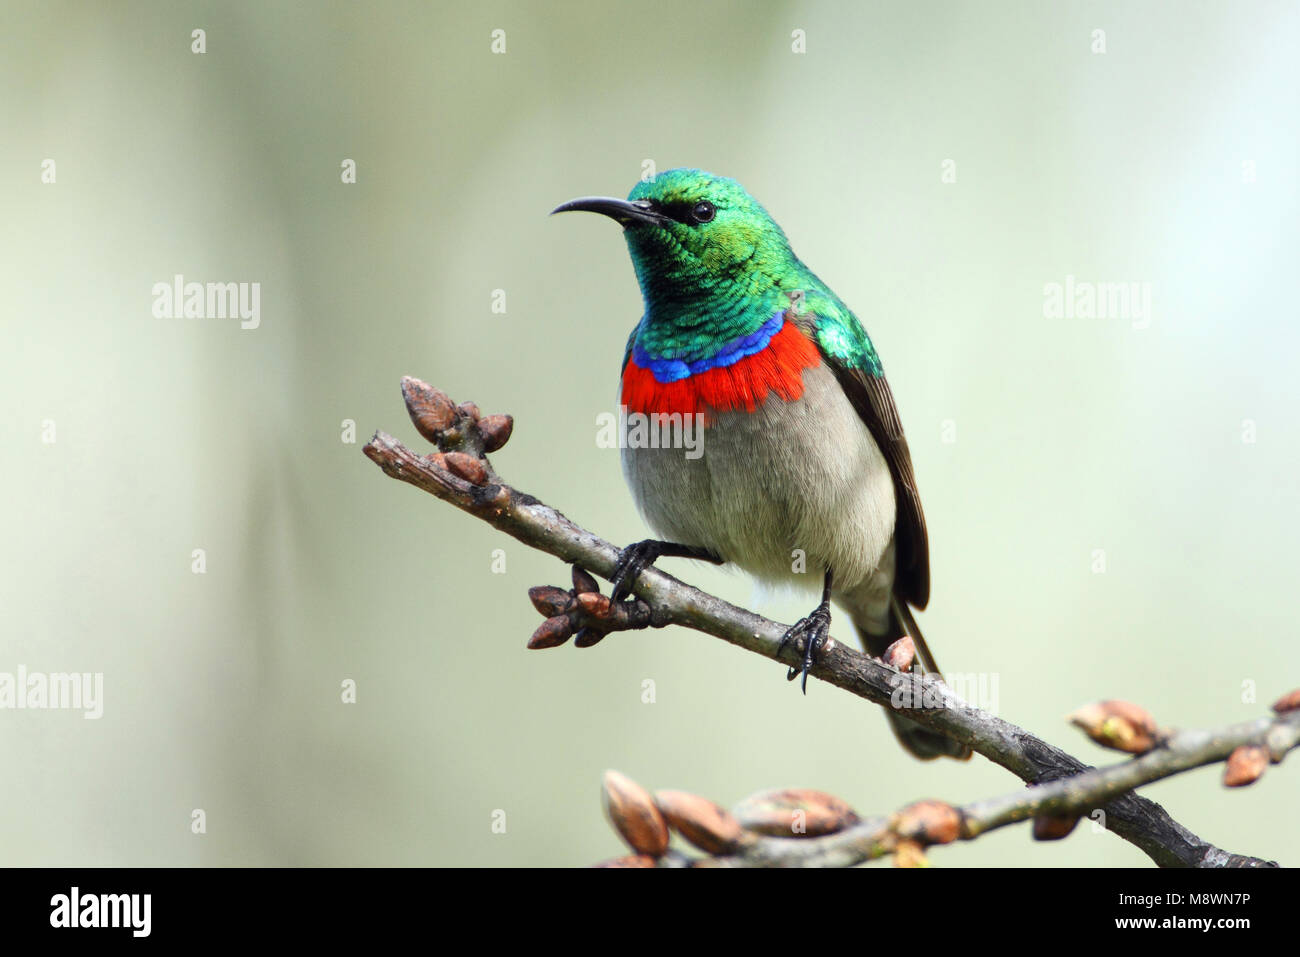 Kleine Kraaghoningzuiger, Southern Double-collared Sunbird - Stock Image